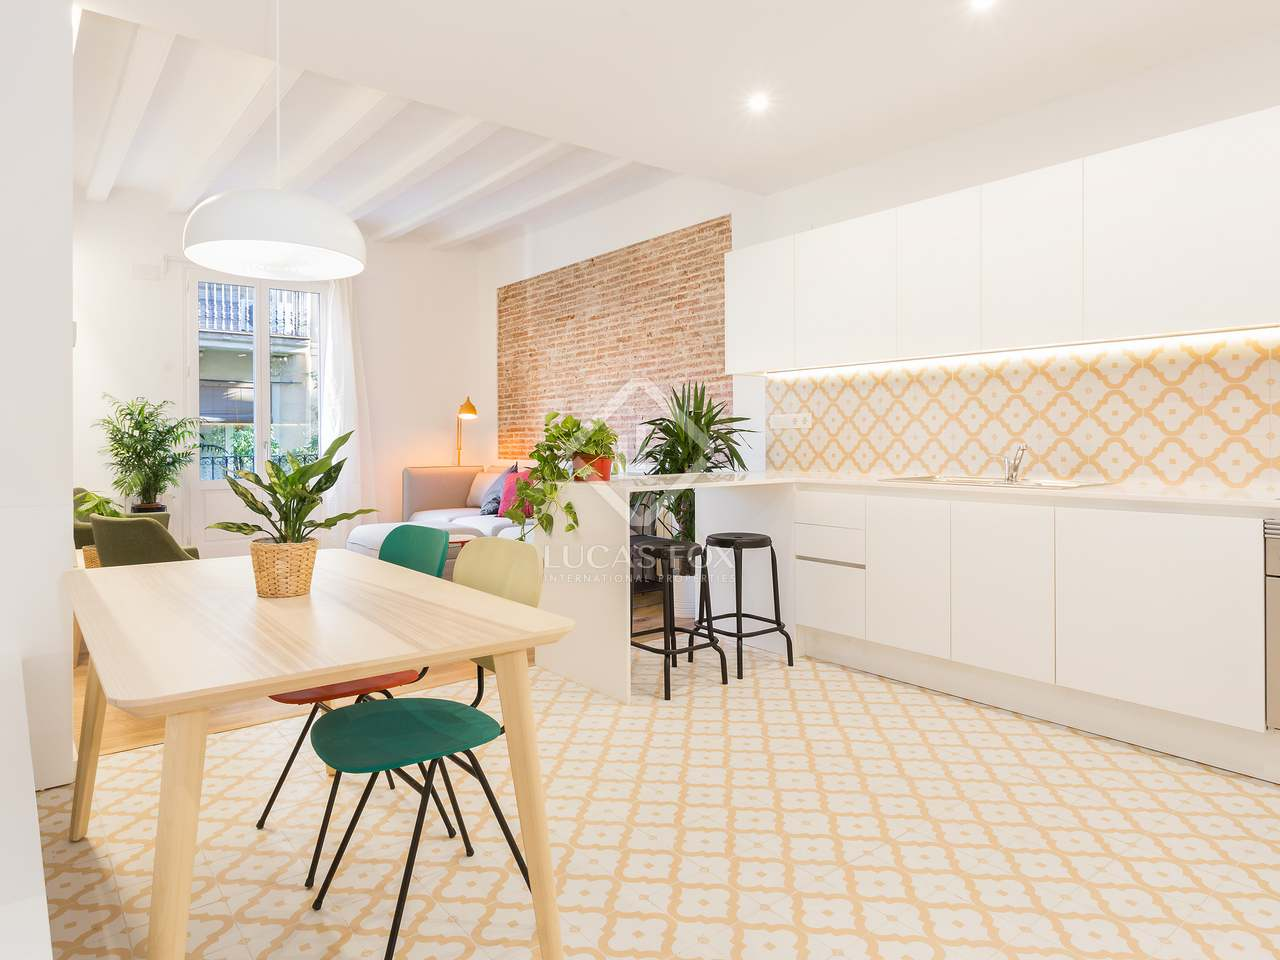 90 m apartment for sale in gracia barcelona for 3 renovated apt with spacious living room 10 pax